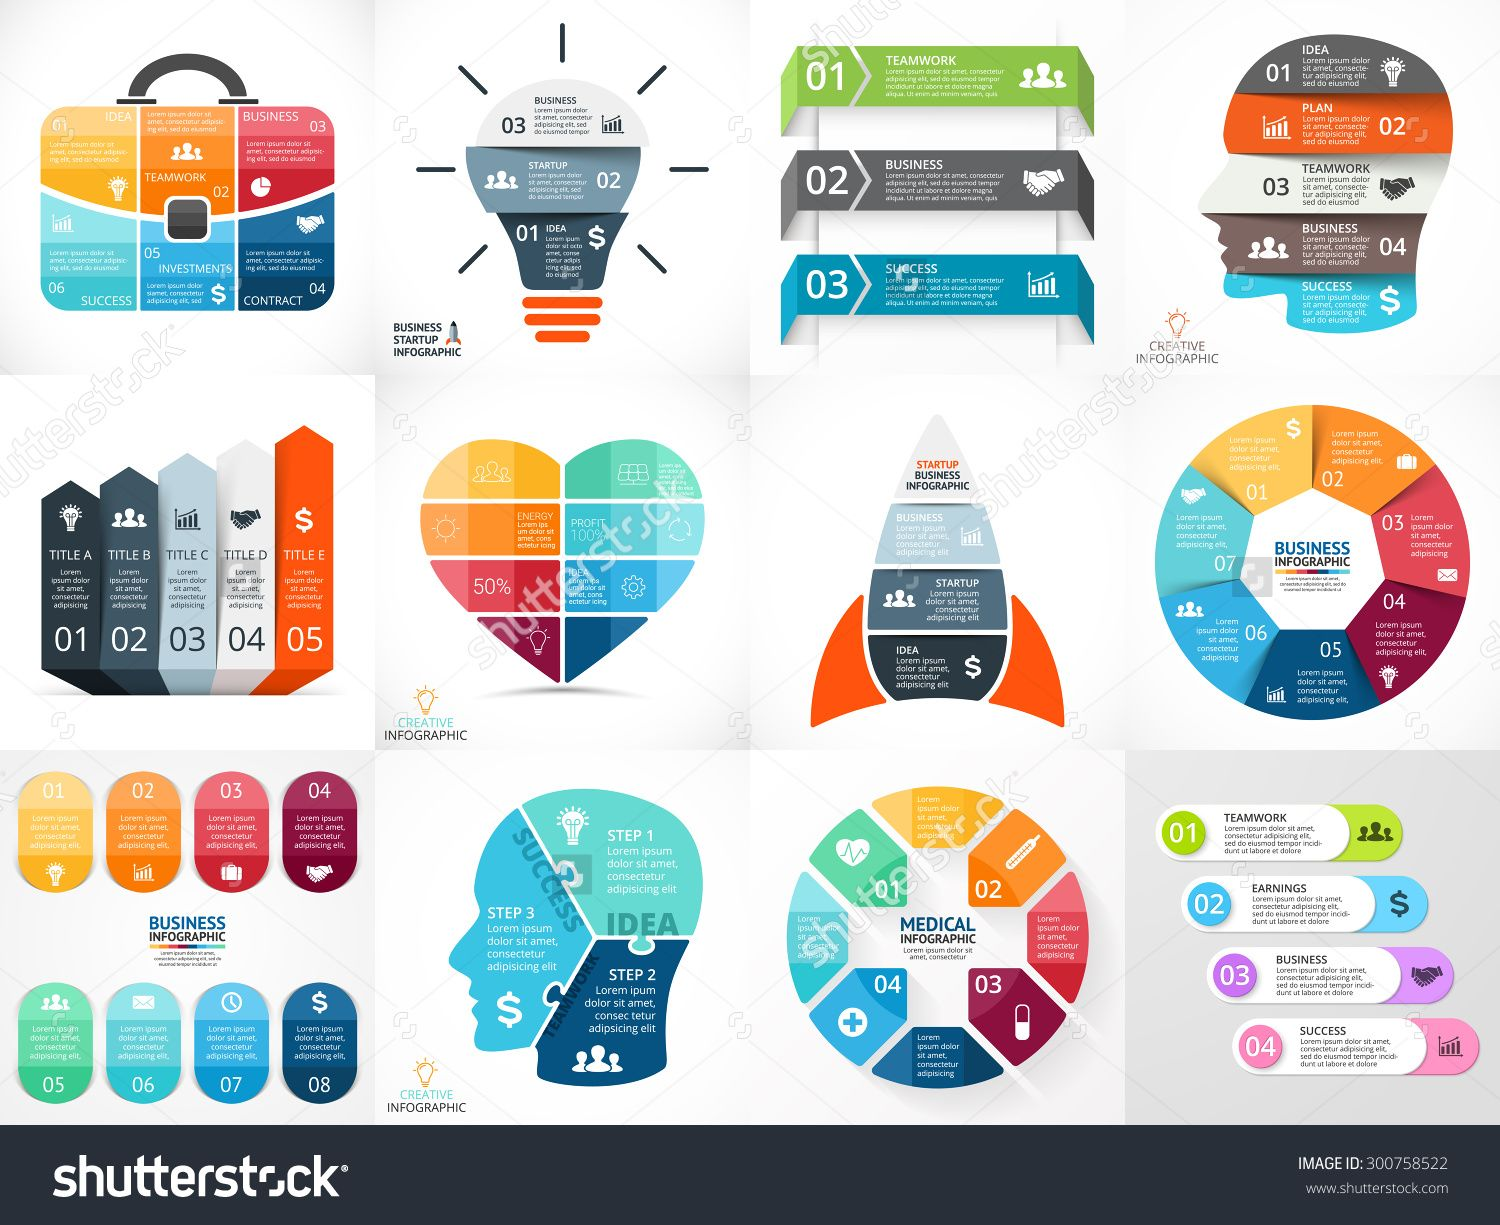 Pin By Indy Rg On Design 3 Pinterest Infographic Chart And Vector Idea With Light Bulb Template For Creative Diagram Teamwork Human Head Presentation Infographics Charts